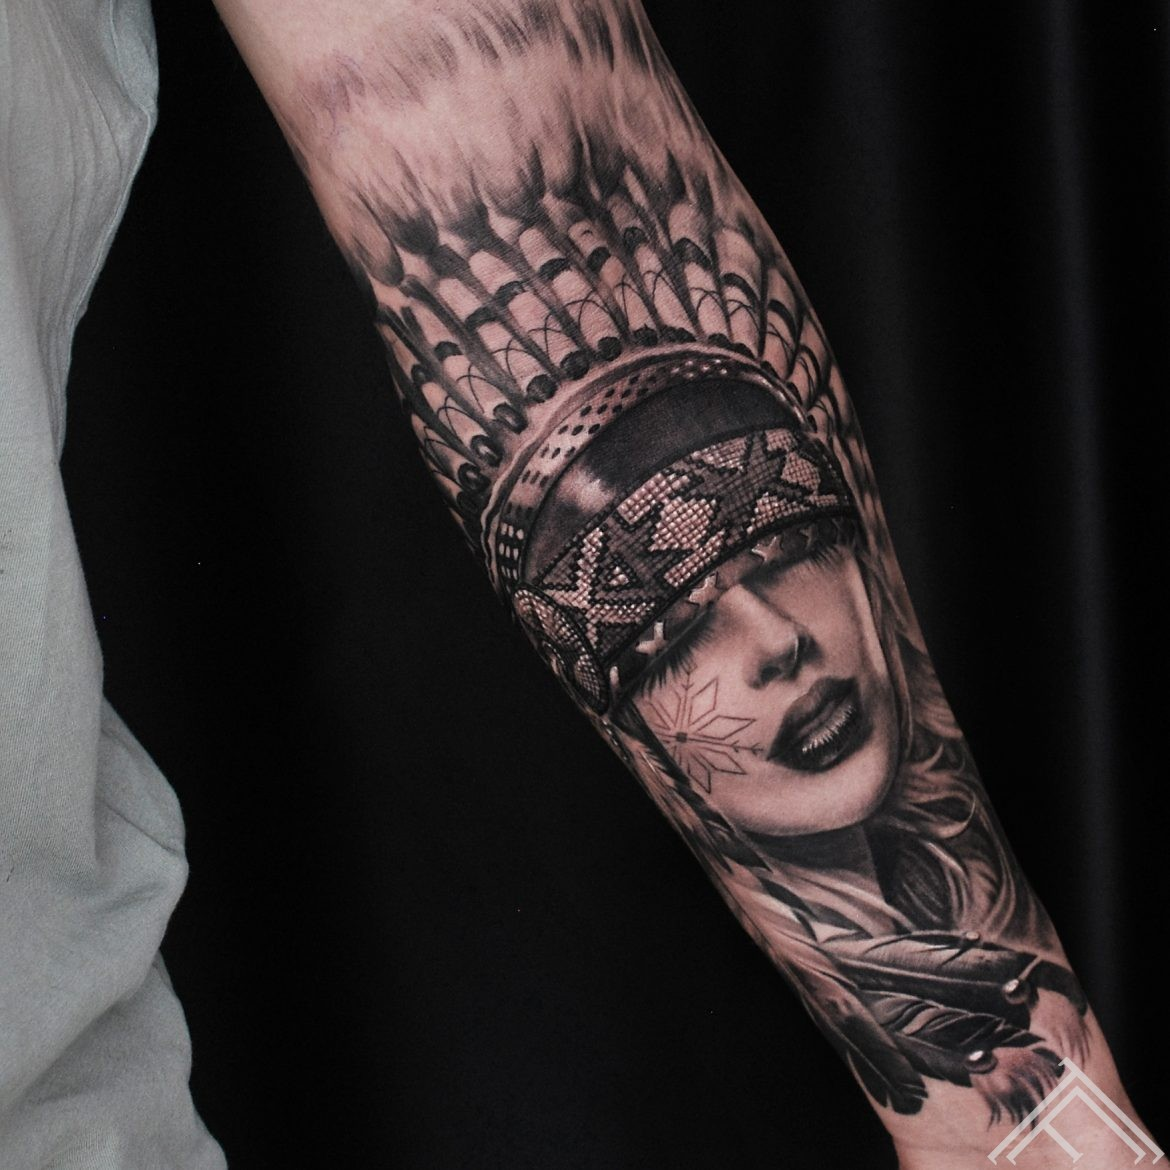 indian-tattoo-woman-tattoofrequency-native-auseklis-latviesuzimes